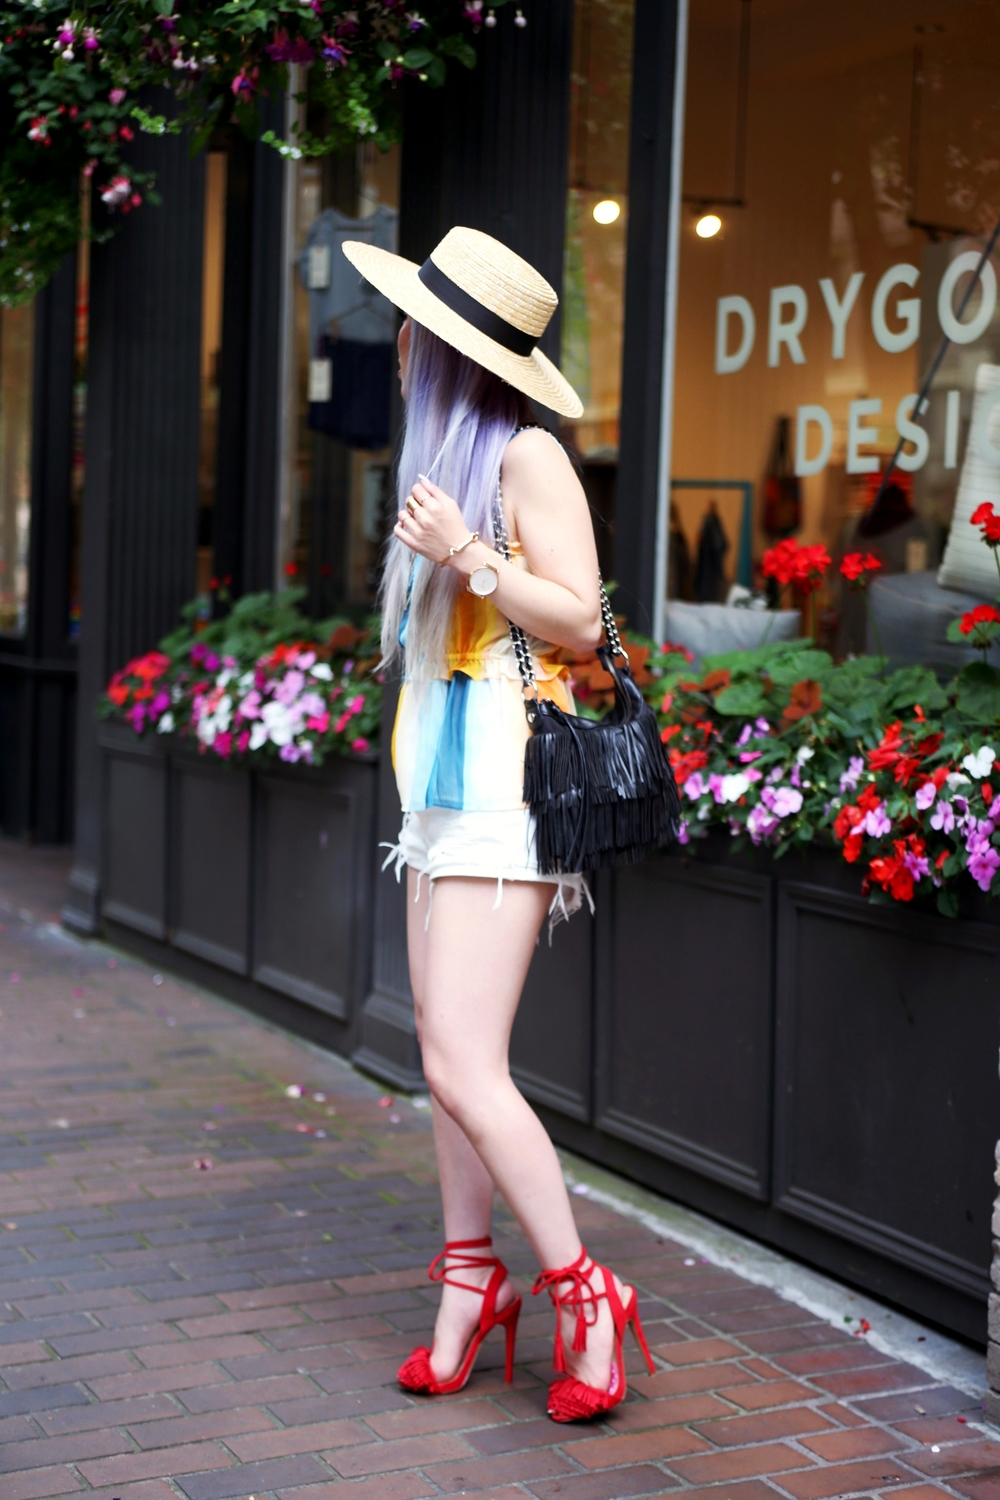 Lack Of Color The Spencer Wide Brimmed Hat_H&M chiffon top_Sincerely Jules Stone Cut Off shorts_Fringe Bag_JustFab Red Fringe Sandals_Marc Bale Rose Gold Watch_Lavender Hair_Aikas Love Closet_Seattle Fashion Blogger from Japan 2